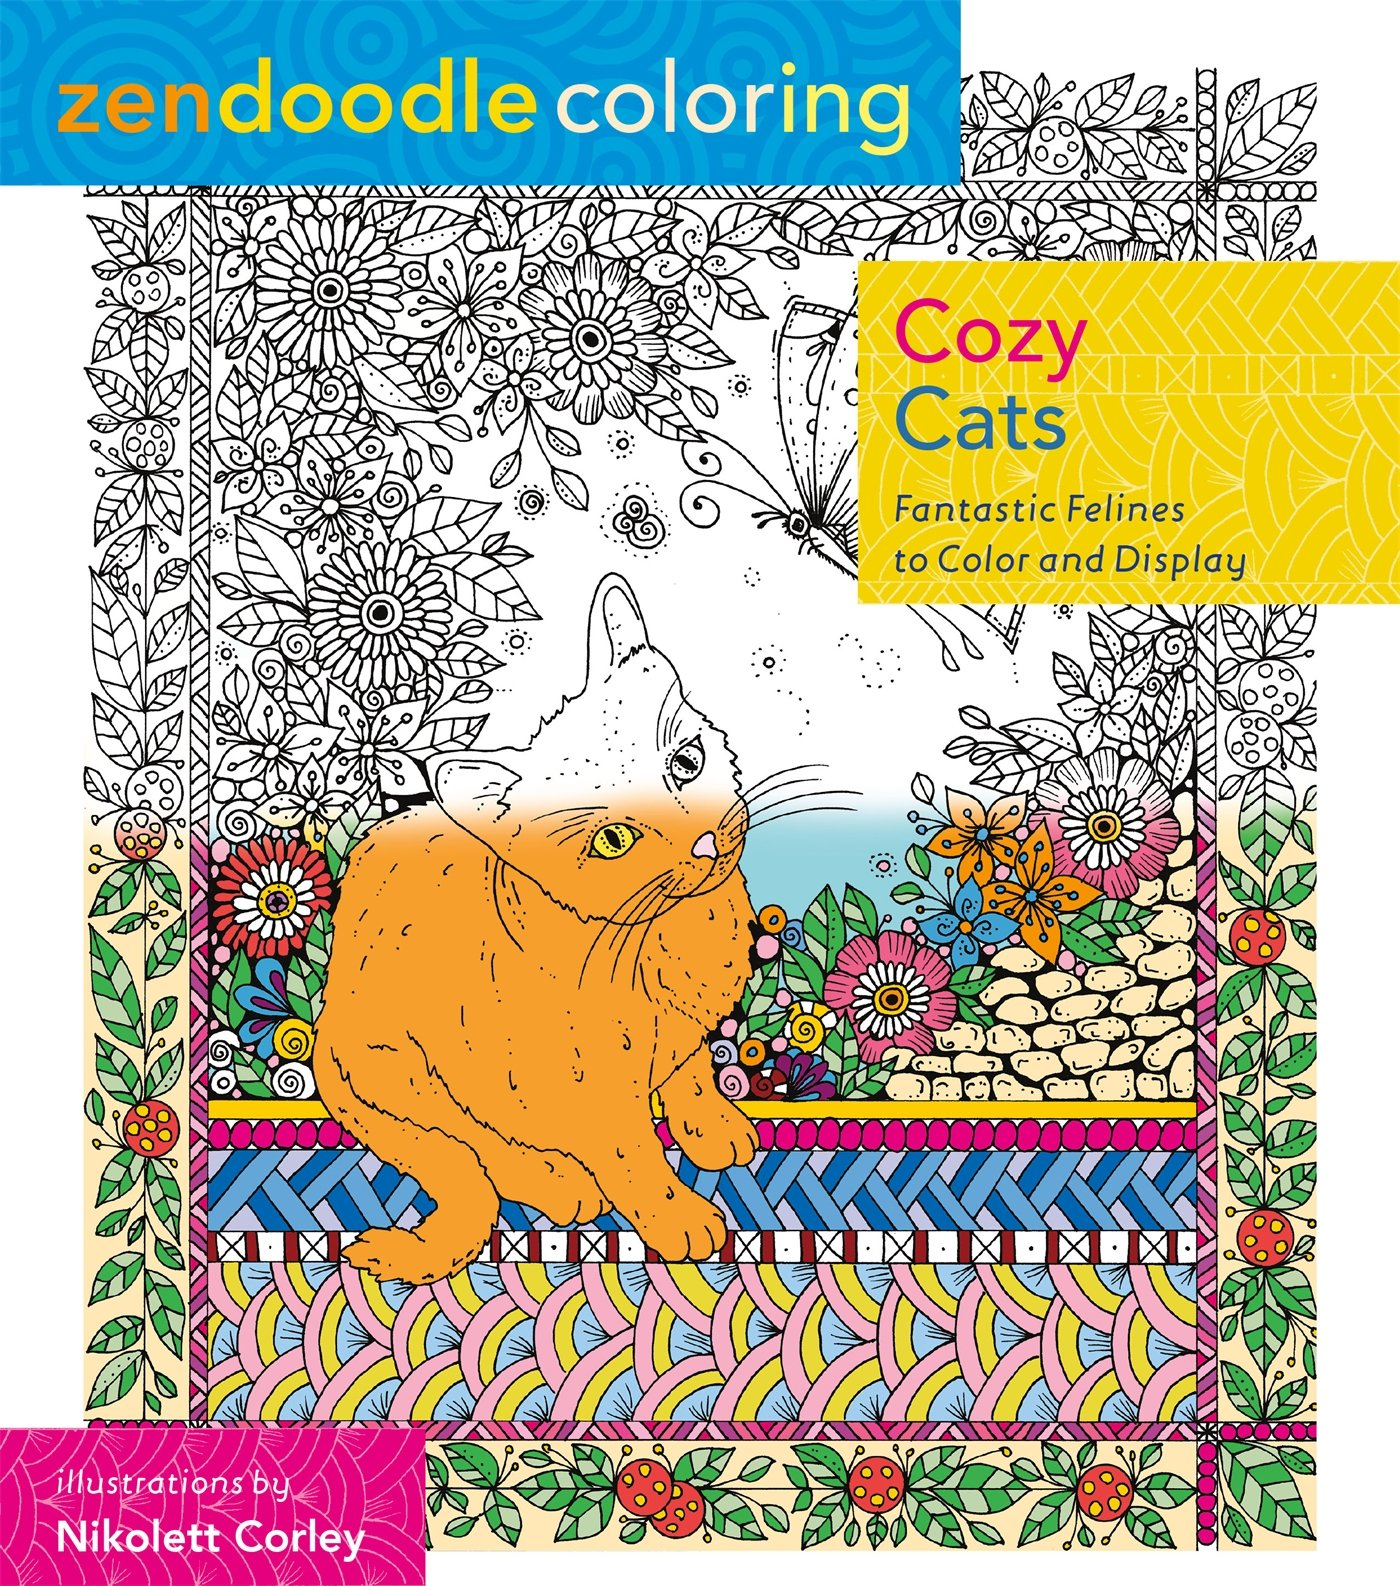 Amazon Com Zendoodle Coloring Cozy Cats Fantastic Felines To